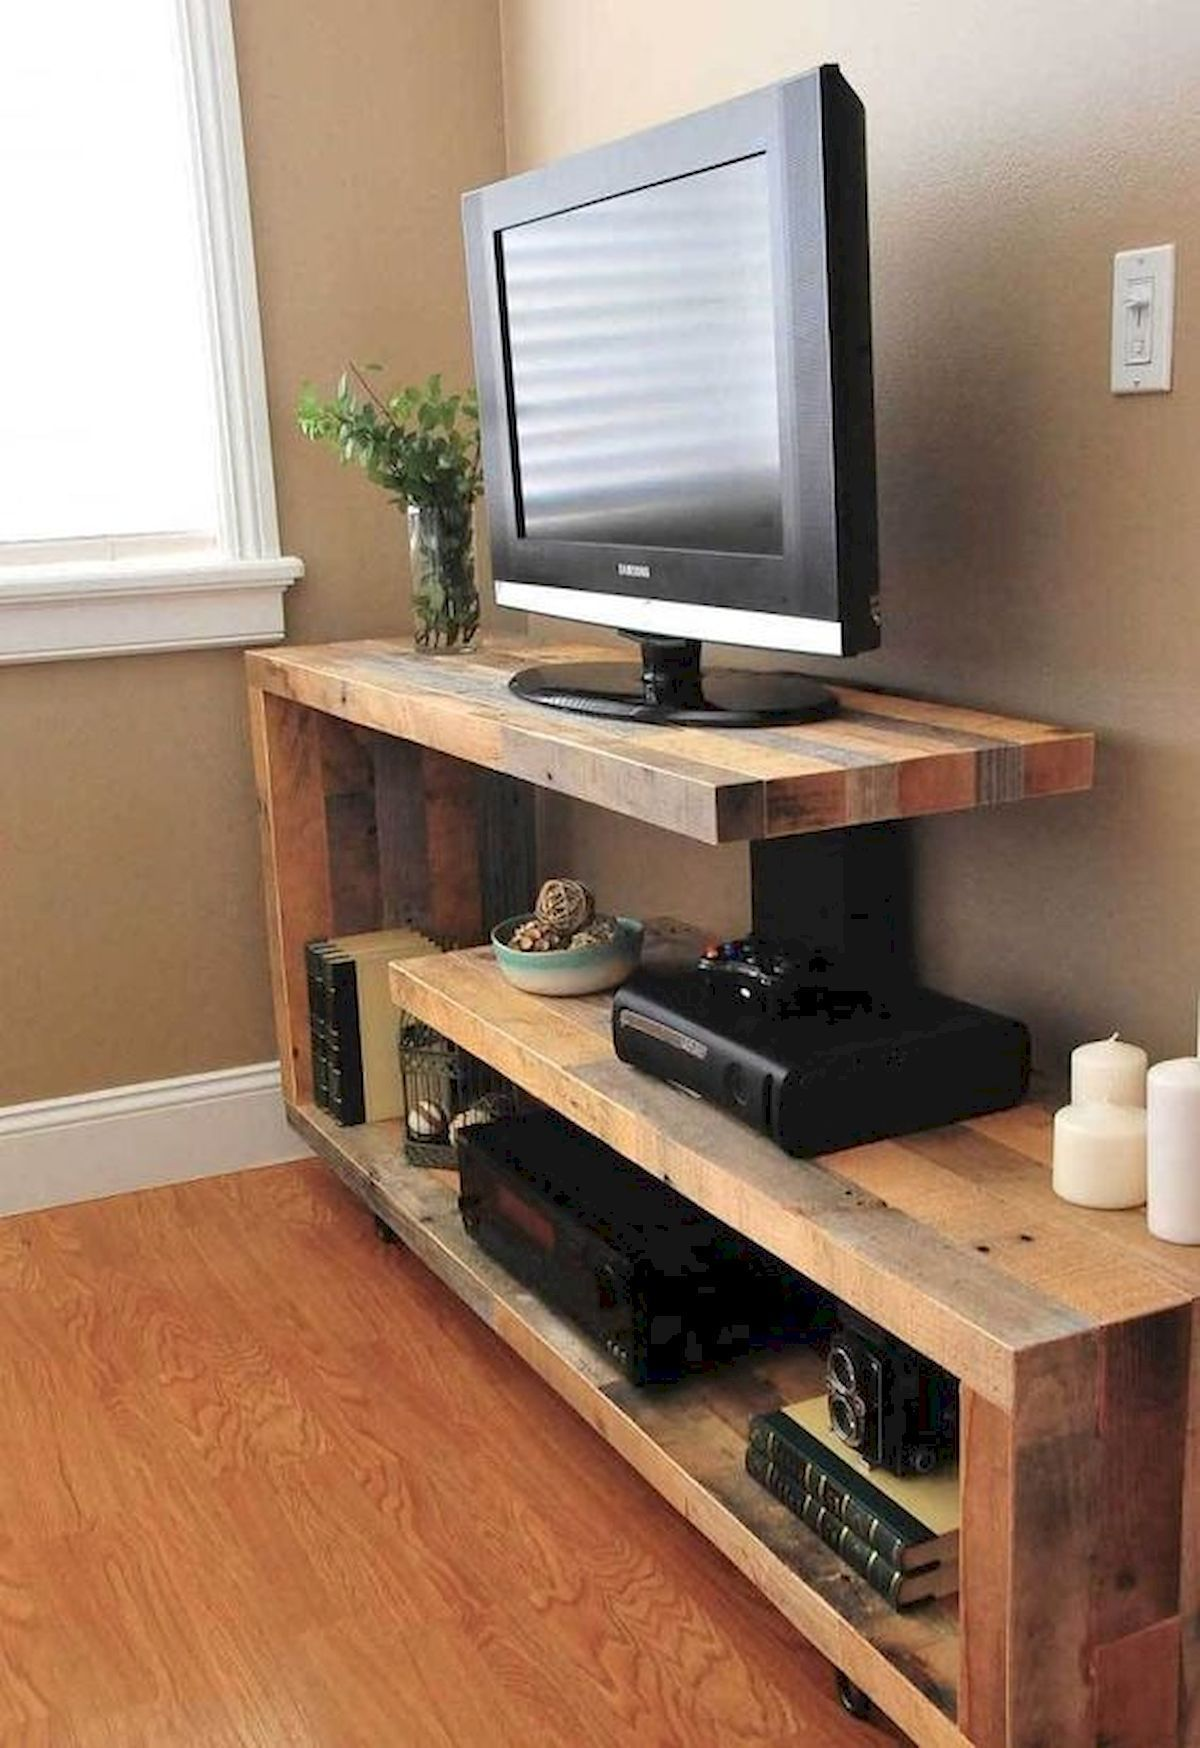 33 Ideas For Pallet Tv Stand 1 33decor Tv Stand Ideas For Small Spaces Living Room Tv Stand Diy Tv Stand